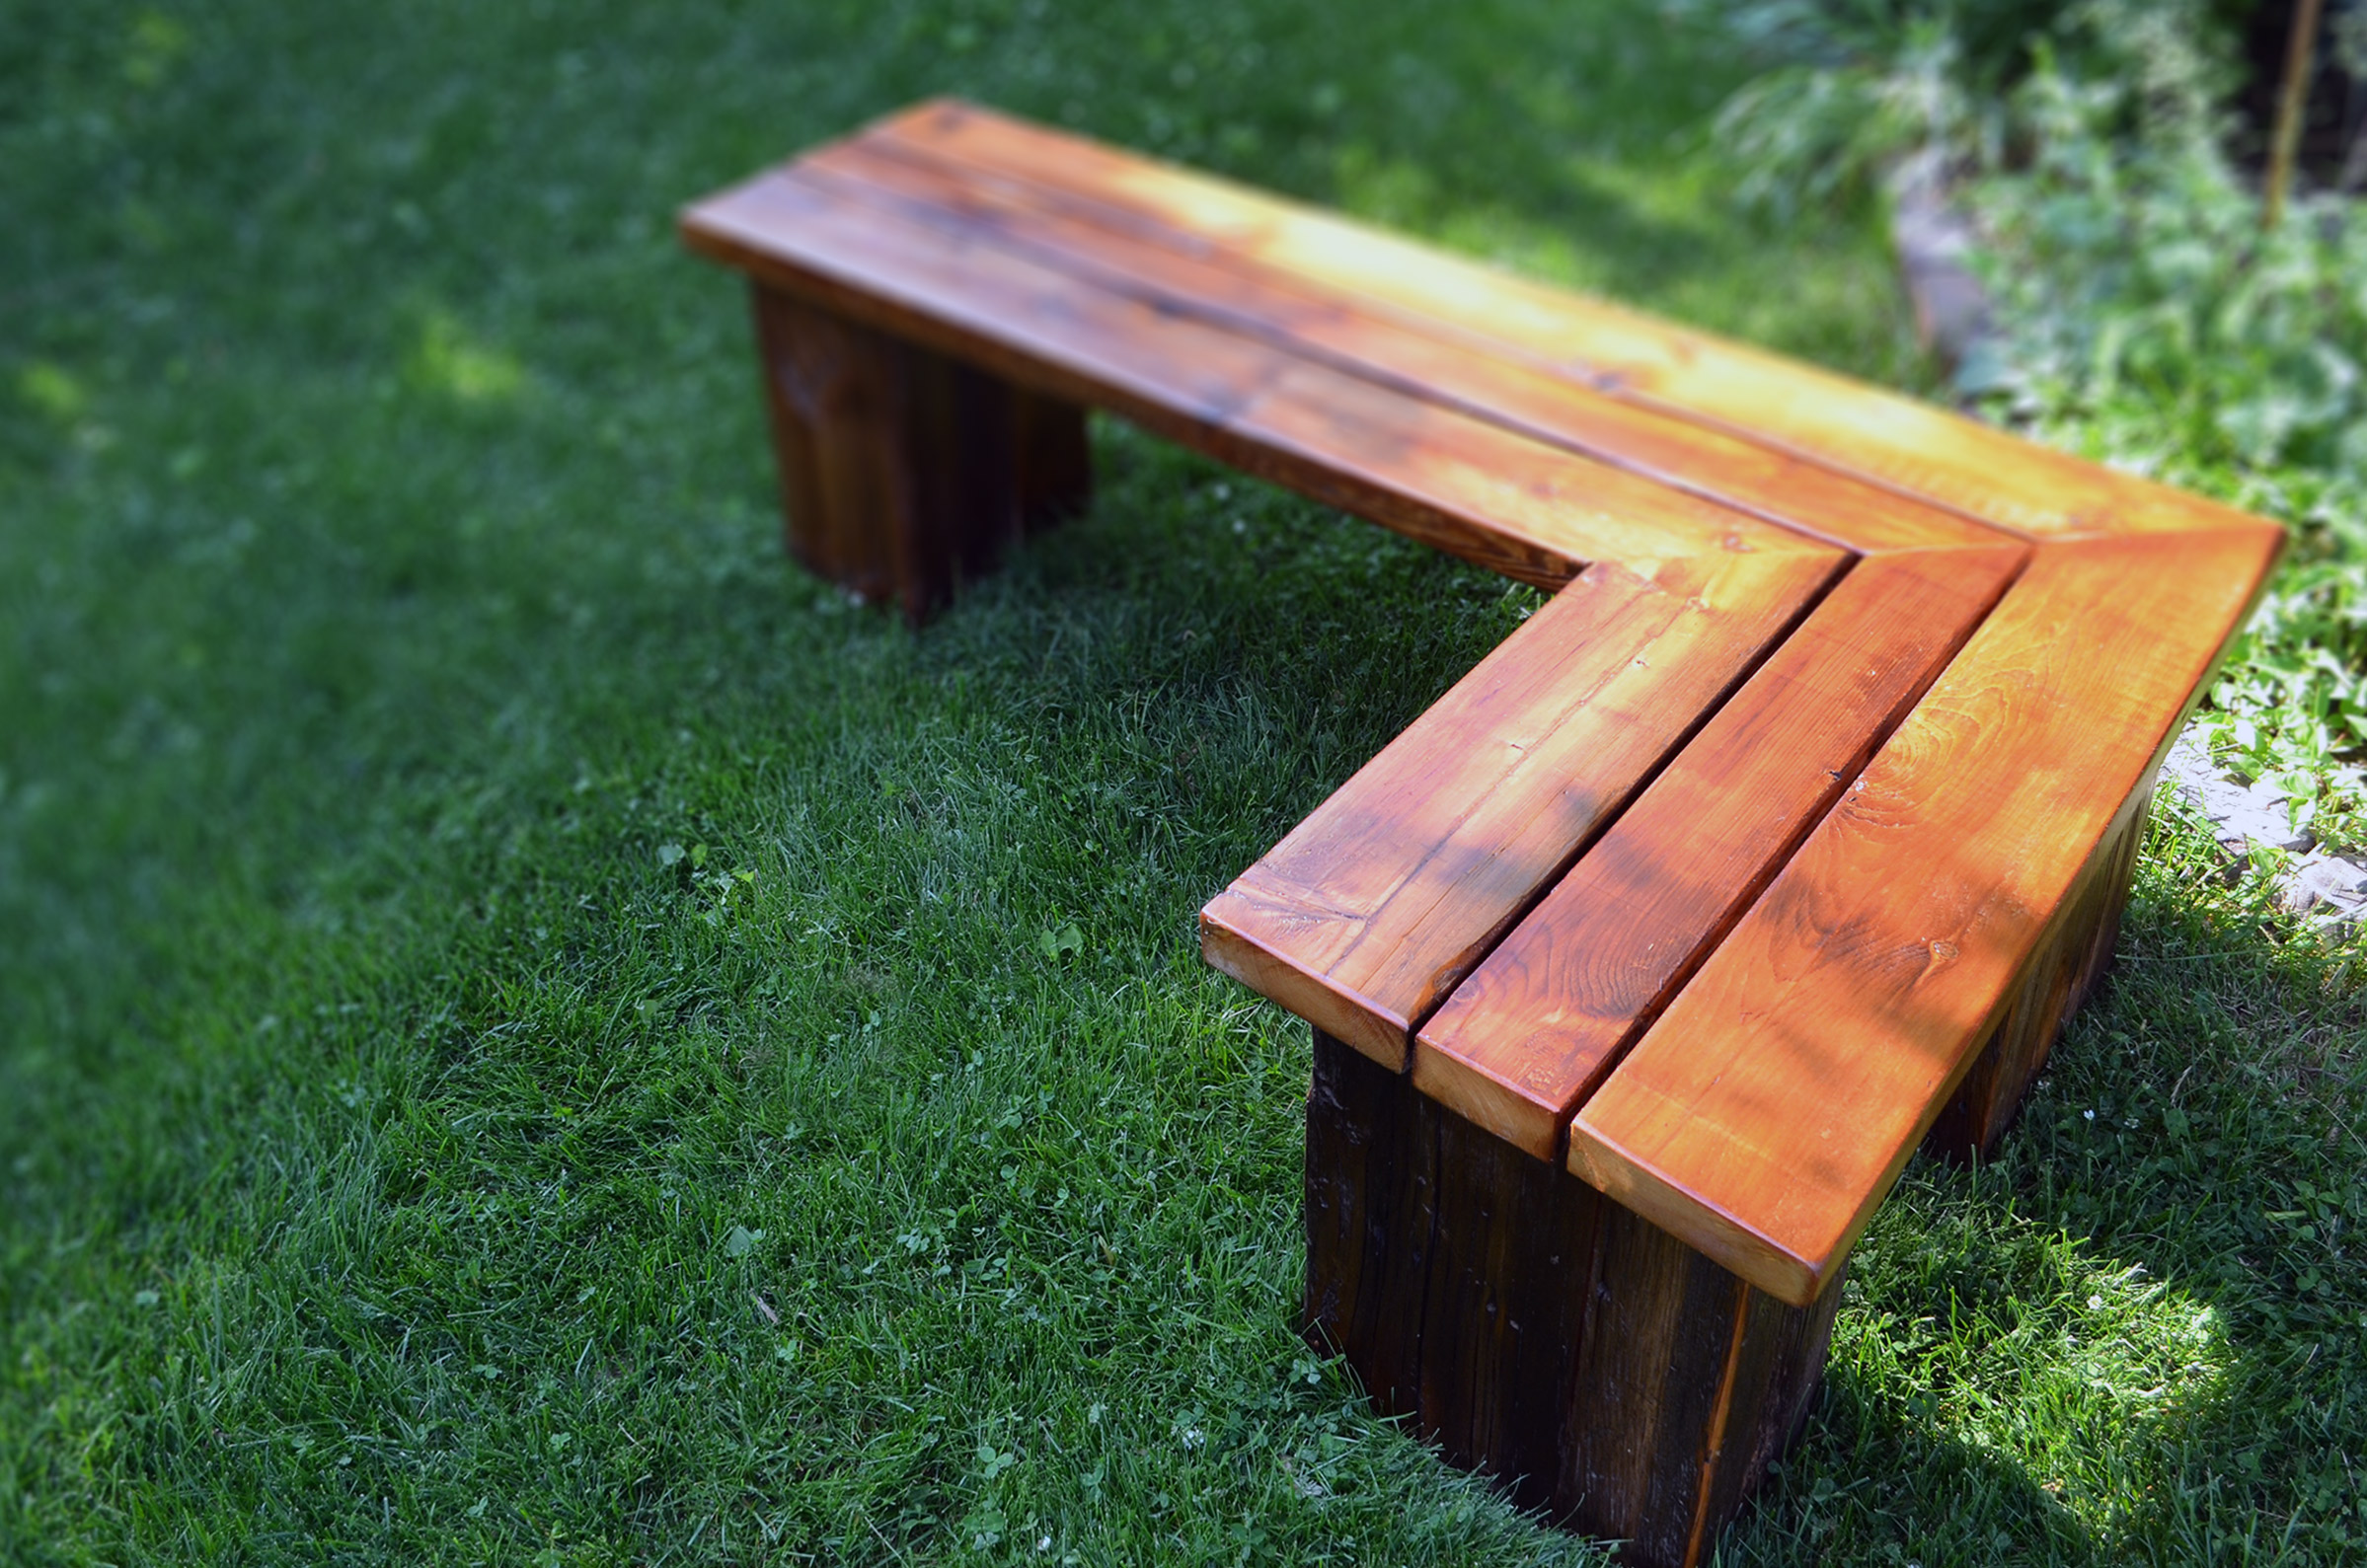 Rustic Outdoor Wood Bench - Outdrbnch5wv